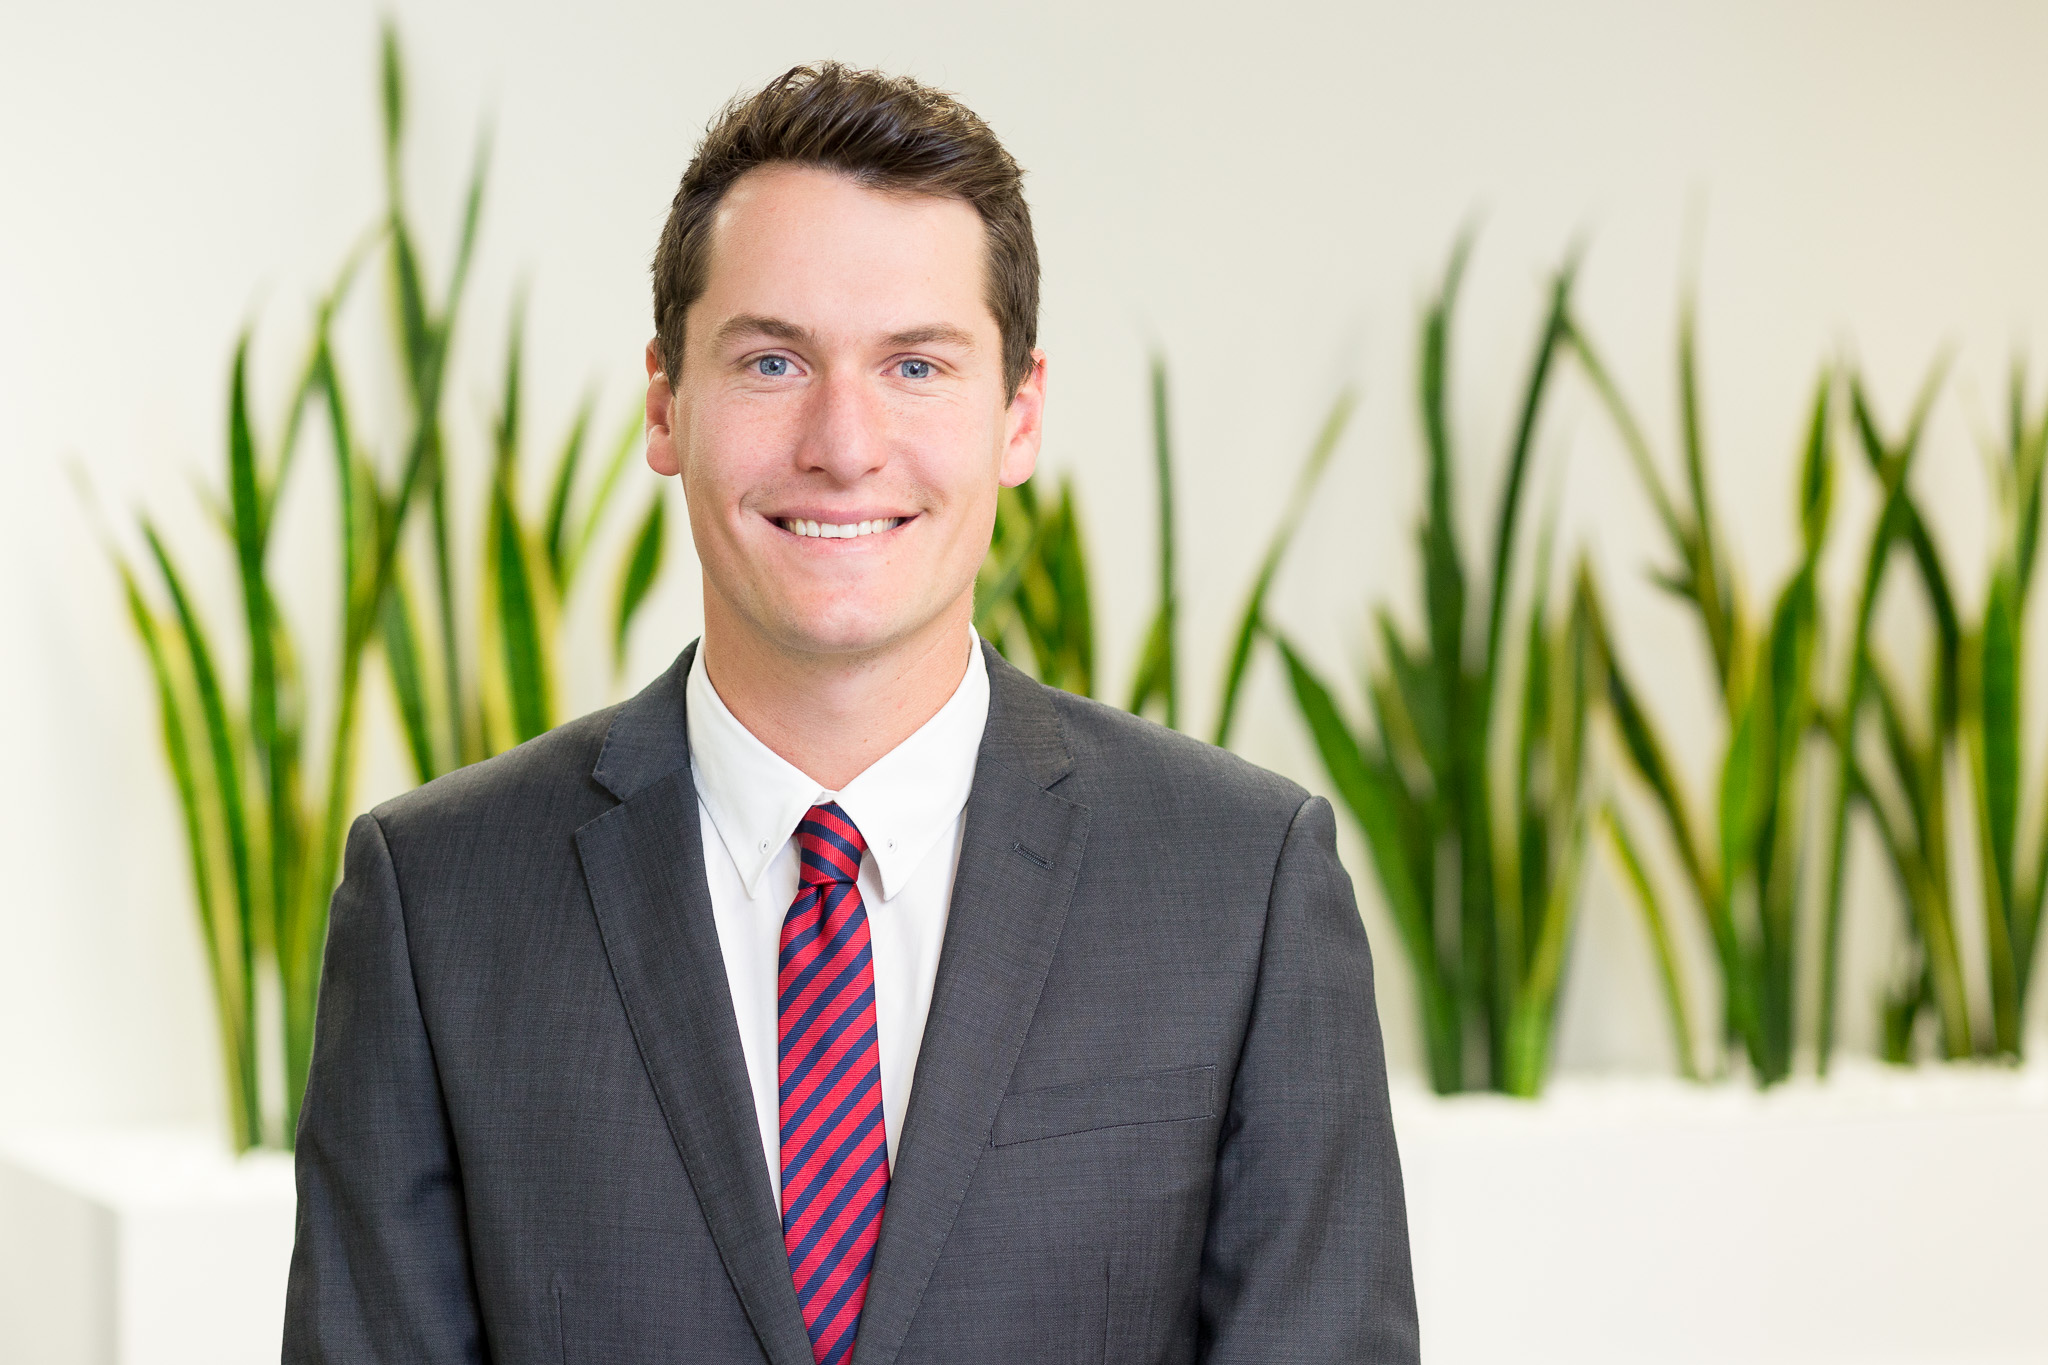 BILL SPURLING Accountant   Bill finished year 12 at Sacred Heart College in 2006 before completing his Diploma in Horticulture and has 8 years experience in landscaping. He started with Letcher Moroney in 2016 and completed his Bachelor of Commerce at the University of Adelaide in 2017. He is currently completing his Chartered Accounting qualification.